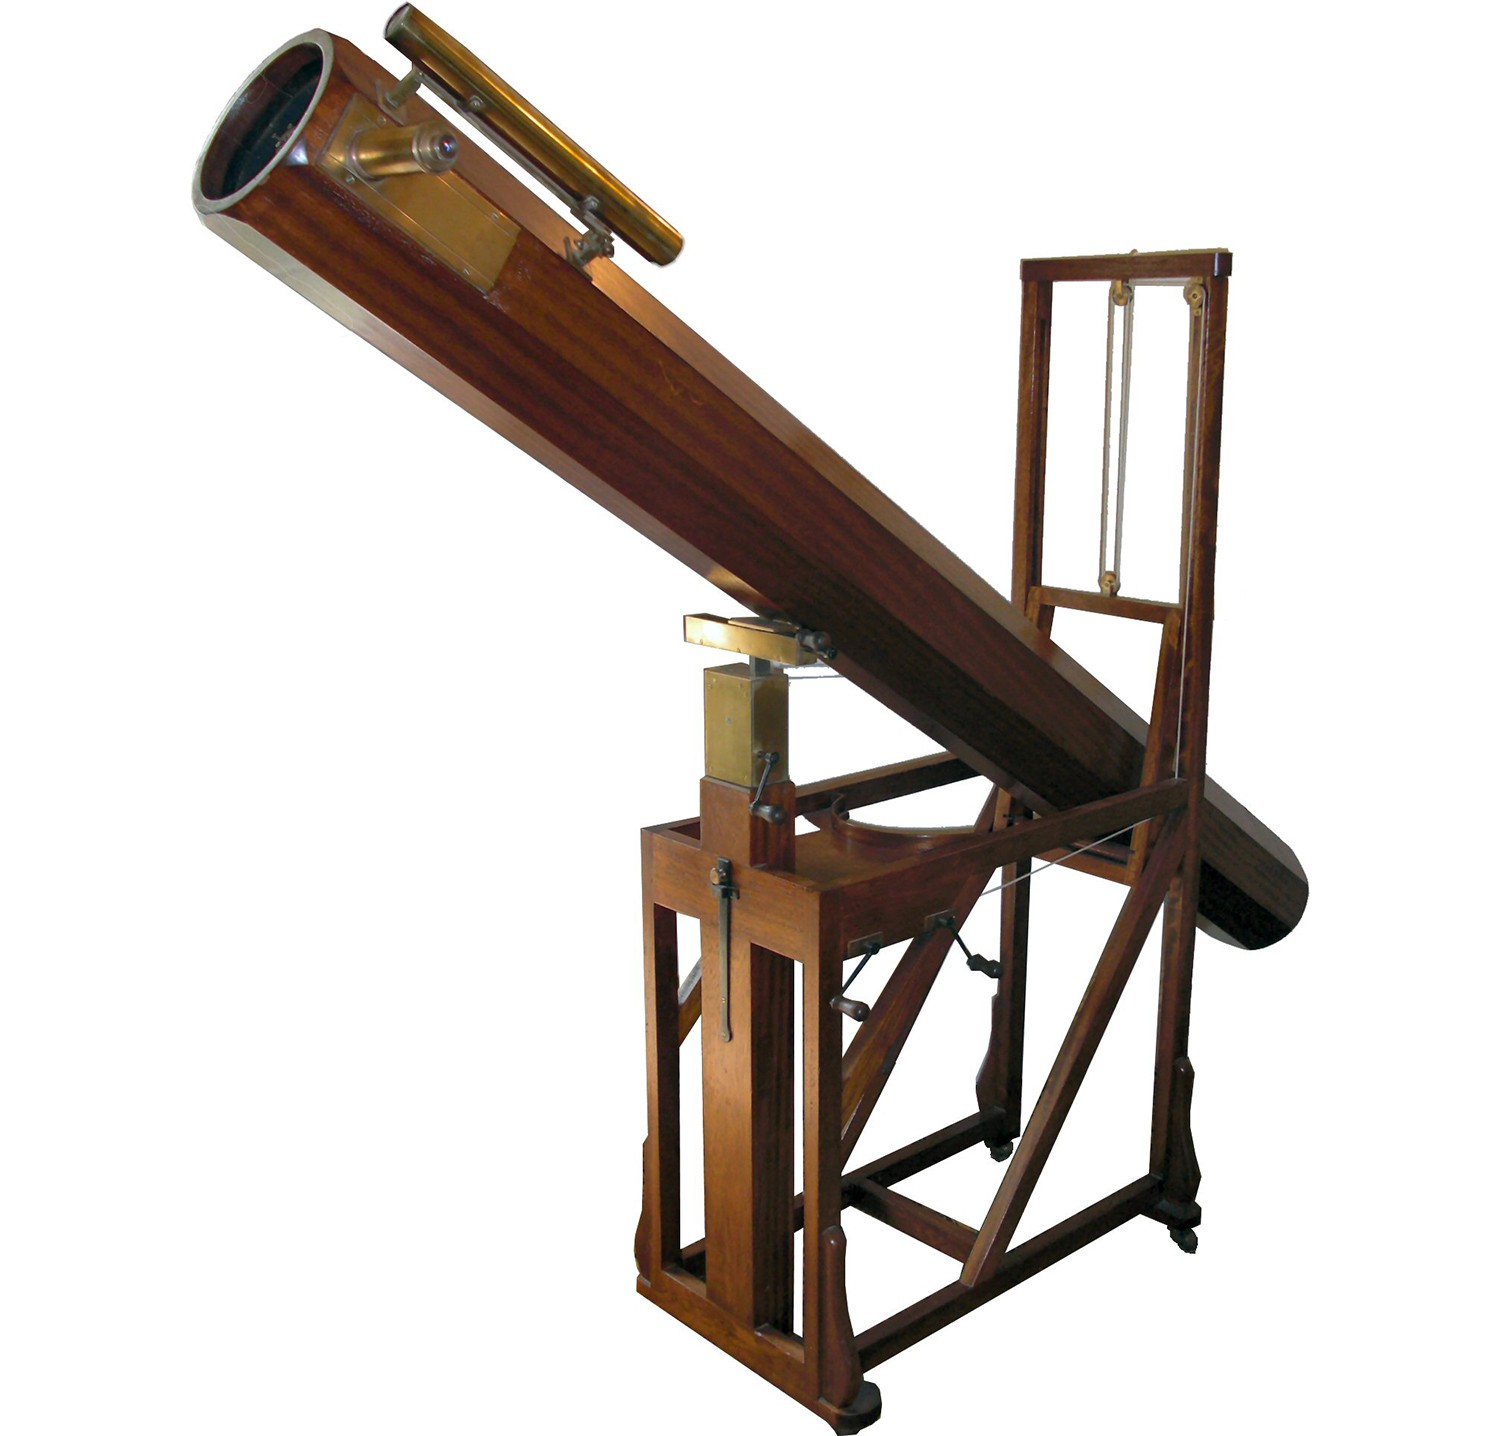 A replica of the telescope with which Herschel discovered Uranus, on display at the Herschel Museum of Astronomy in Bath, UK. Credit: Mike Young (https://en.wikipedia.org/wiki/William_Herschel)